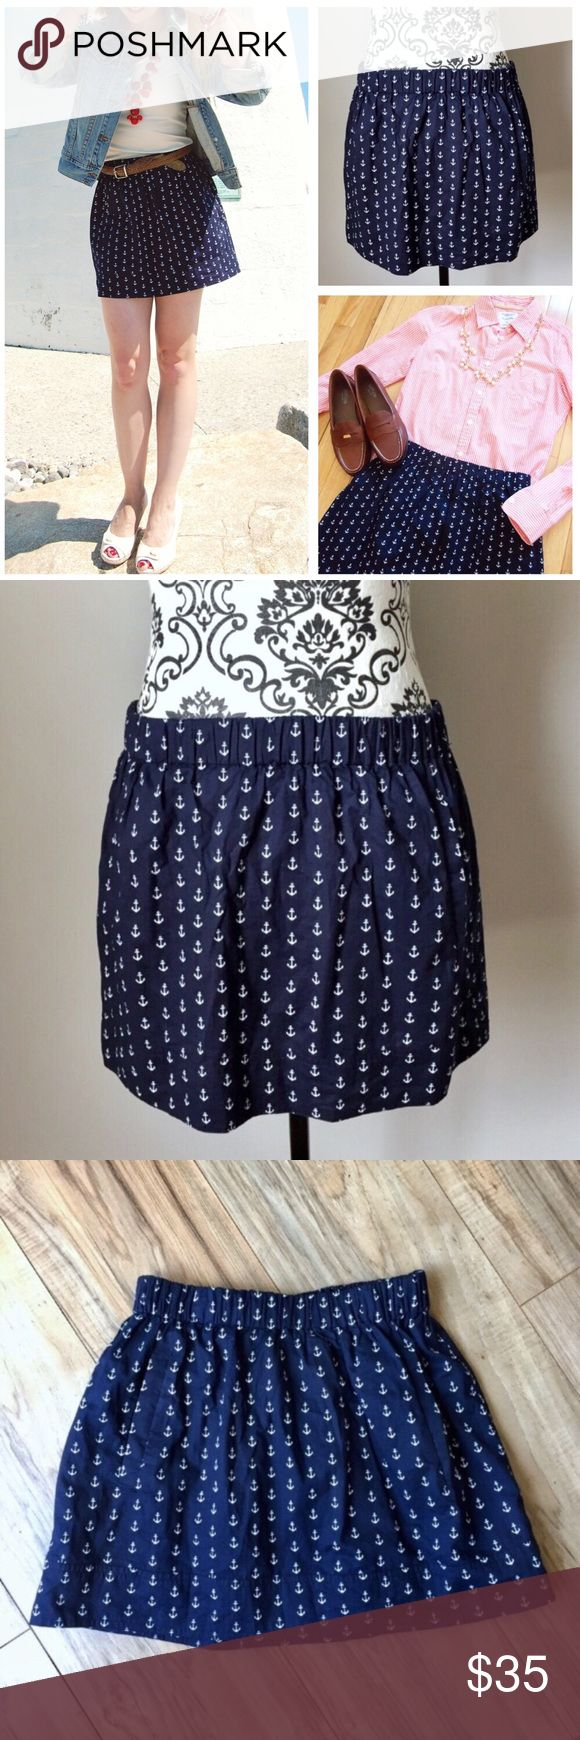 """J.Crew Factory navy white anchor skirt w/ pockets J. Crew Factory navy and white anchor skirt with POCKETS! Fully lined.  100% cotton.  ***Size XXS would fit up to a small as there is a ton of stretch in the elastic waistband*** Waistband laid flat without stretching is 12"""" and completely stretched is 18"""".  Length 13"""".  Adorable and fun little skirt that will transition great to fall! J. Crew Factory Skirts"""